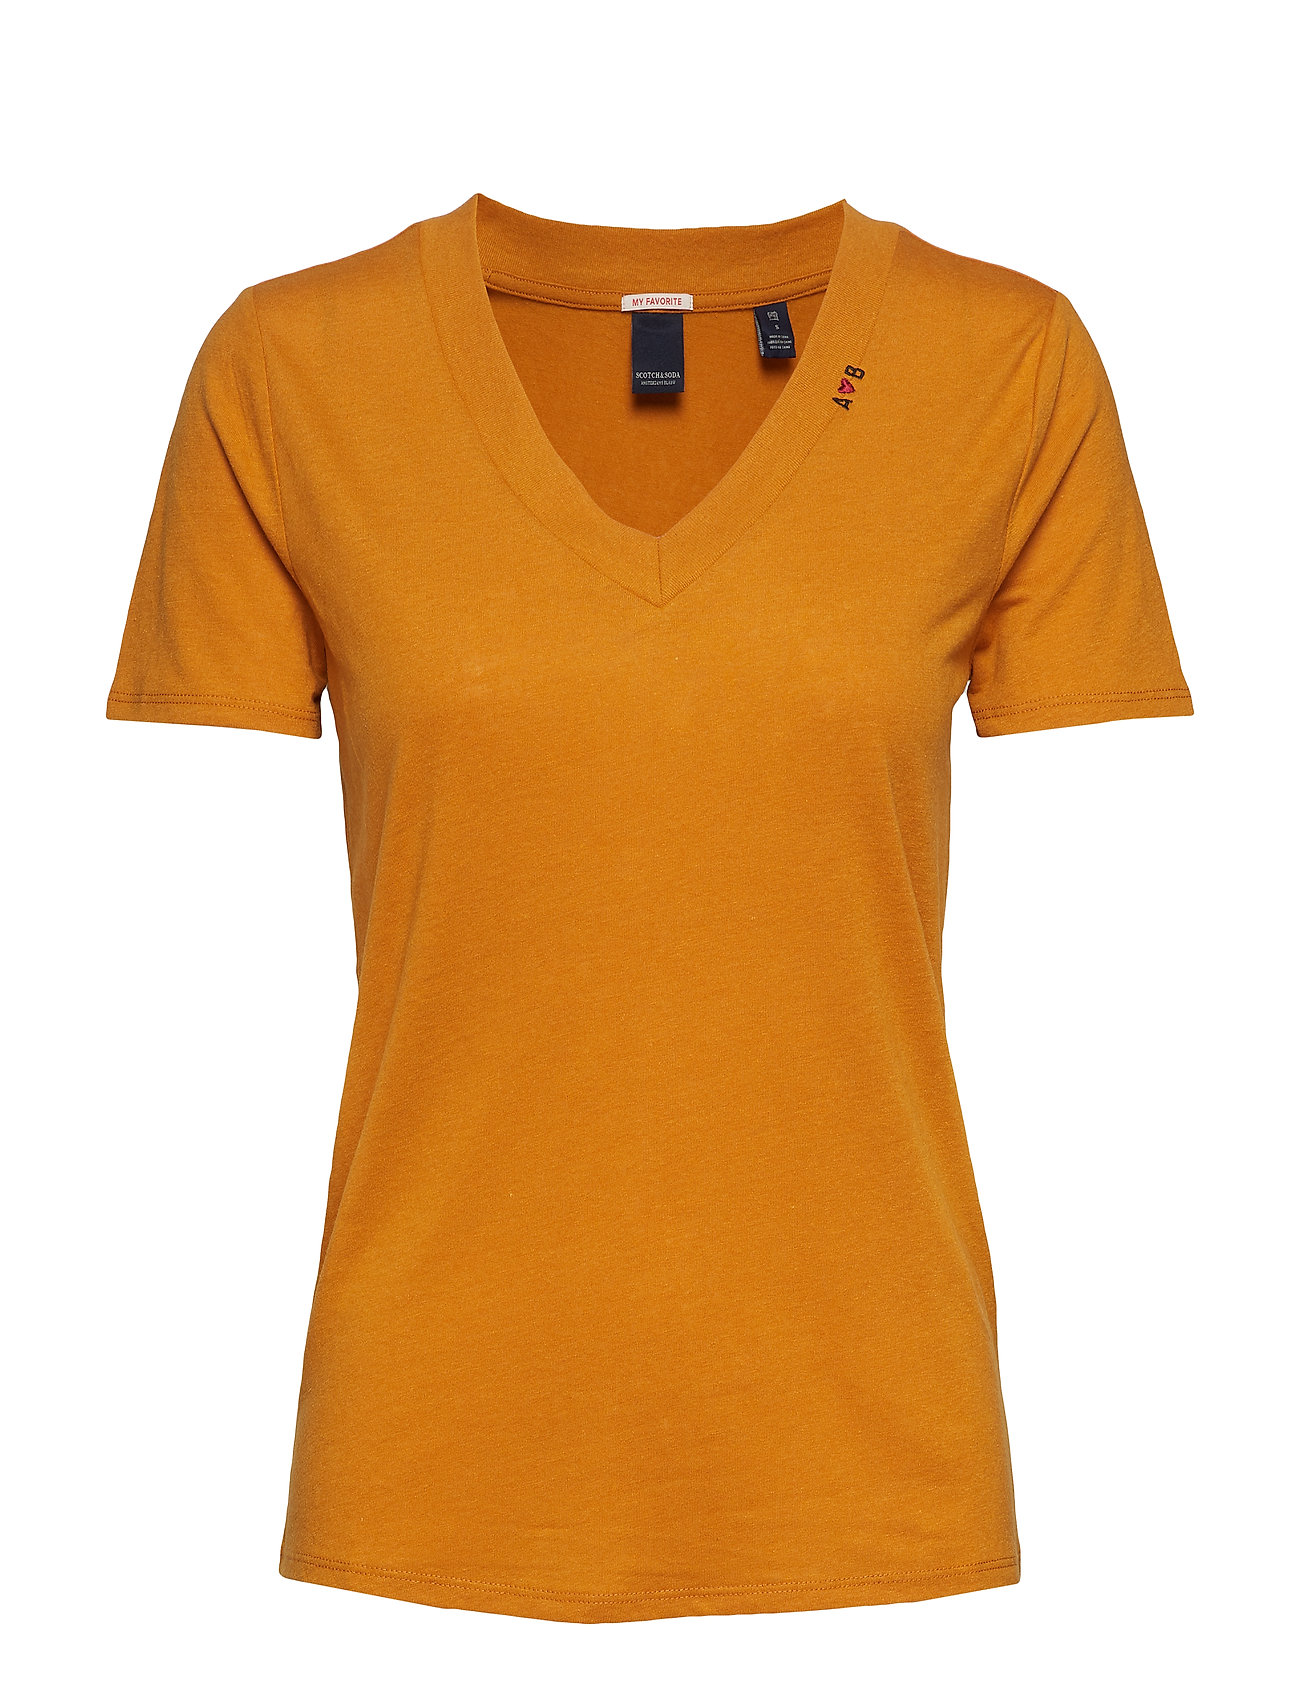 Scotch & Soda Feminine tee with deep V neck in linen mix quality - BURNED ORANGE